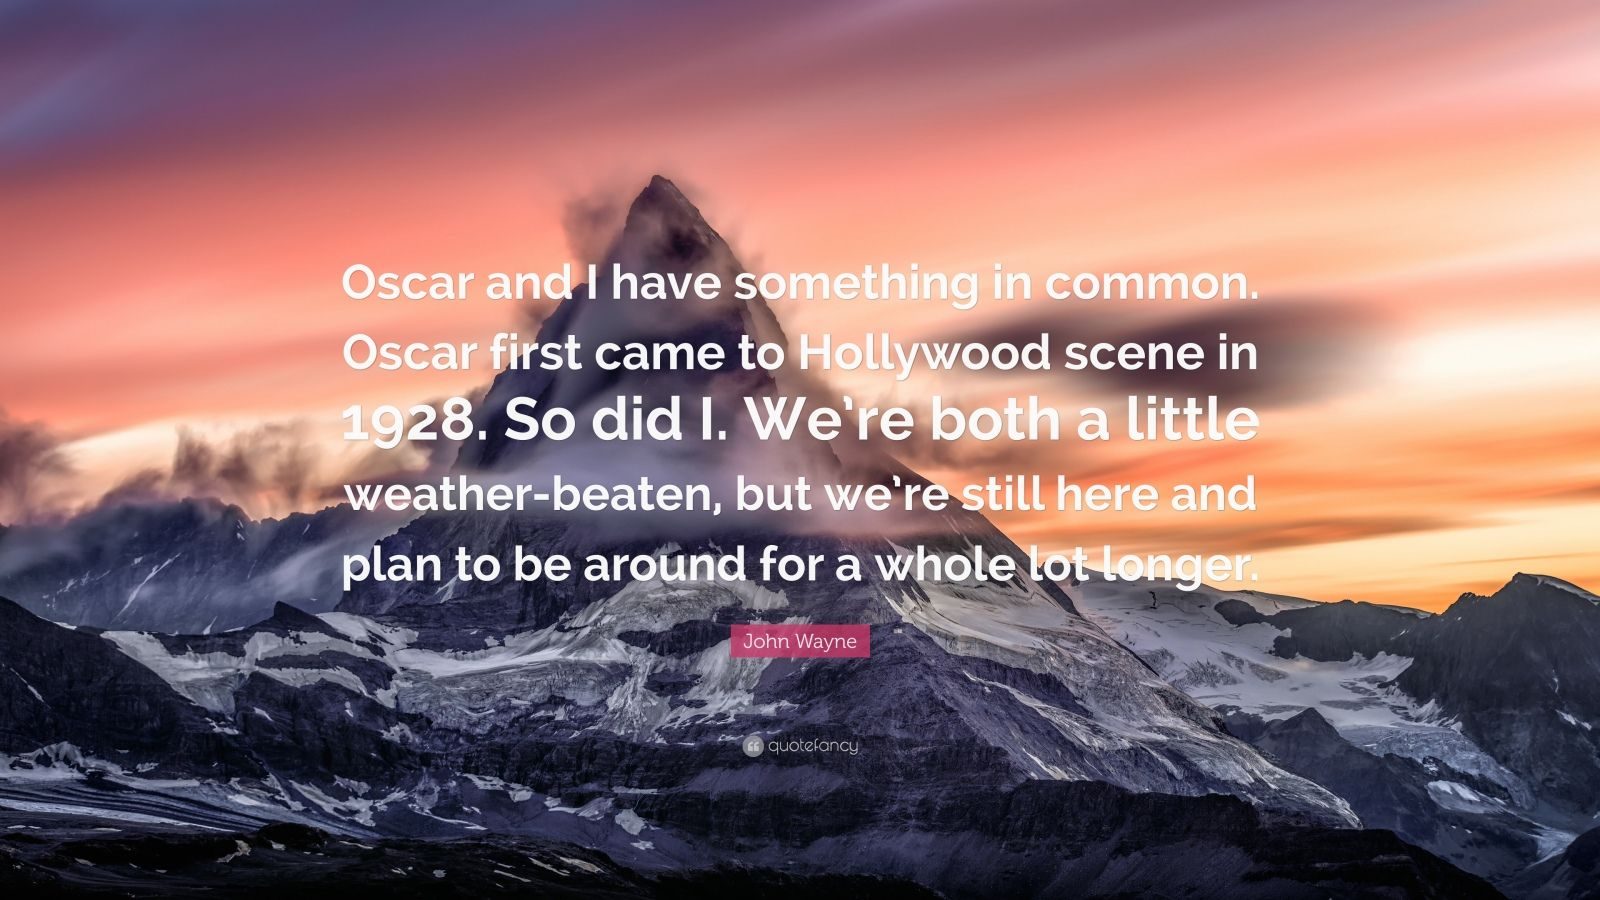 """John Wayne Quote: """"Oscar and I have something in common. Oscar first came to Hollywood scene in 1928. So did I. We're both a little weather-beaten, but we're still here and plan to be around for a whole lot longer."""""""